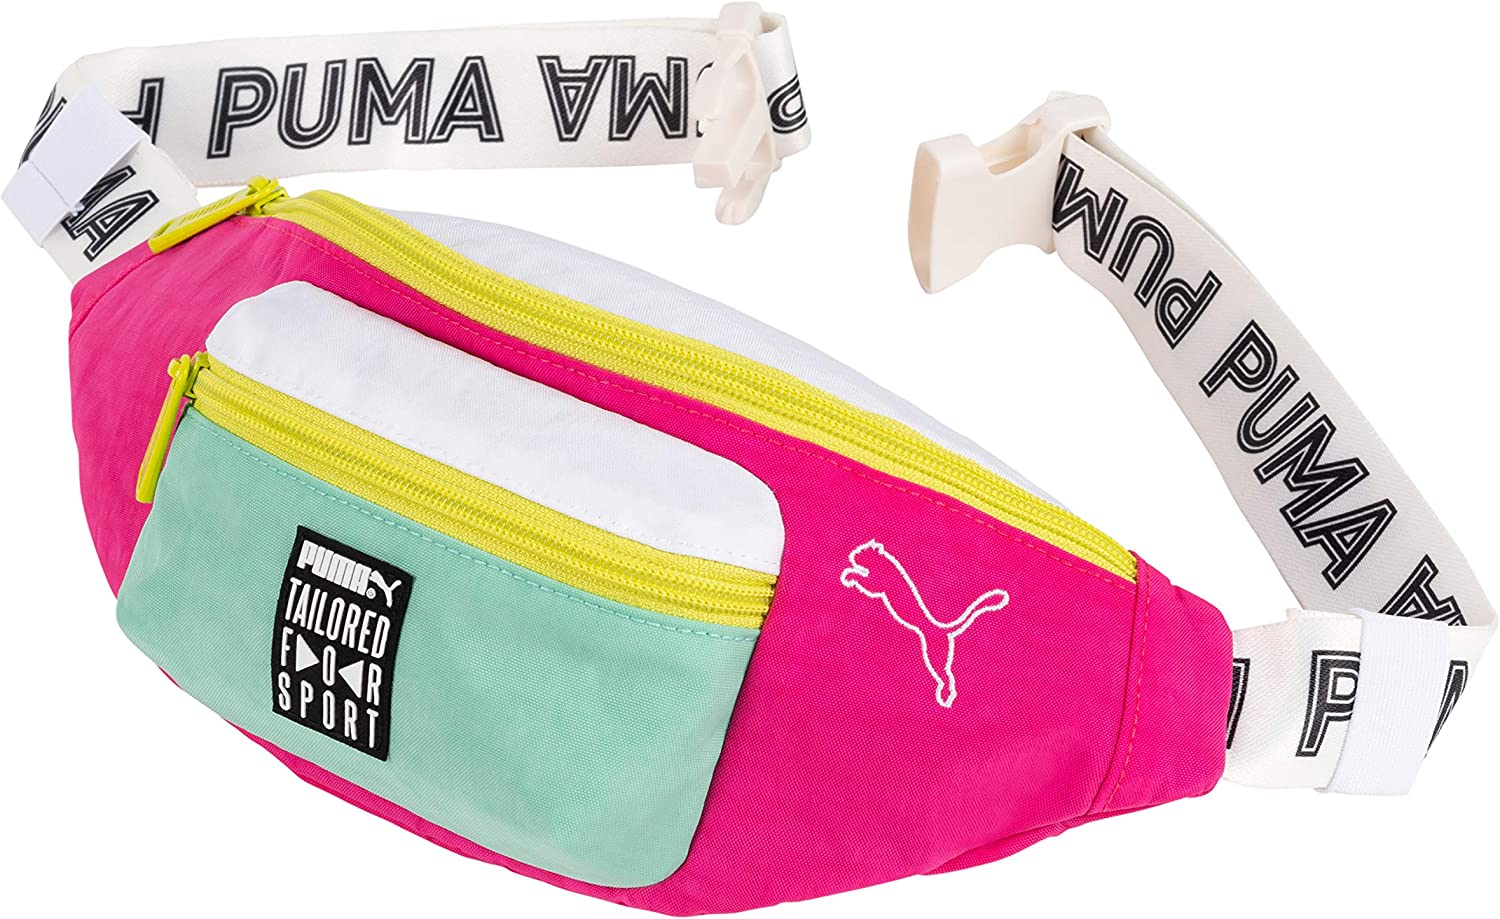 PUMA Tailored for Sport Waist and Shoulder Pack Bag (White/Pink): Amazon.es: Zapatos y complementos